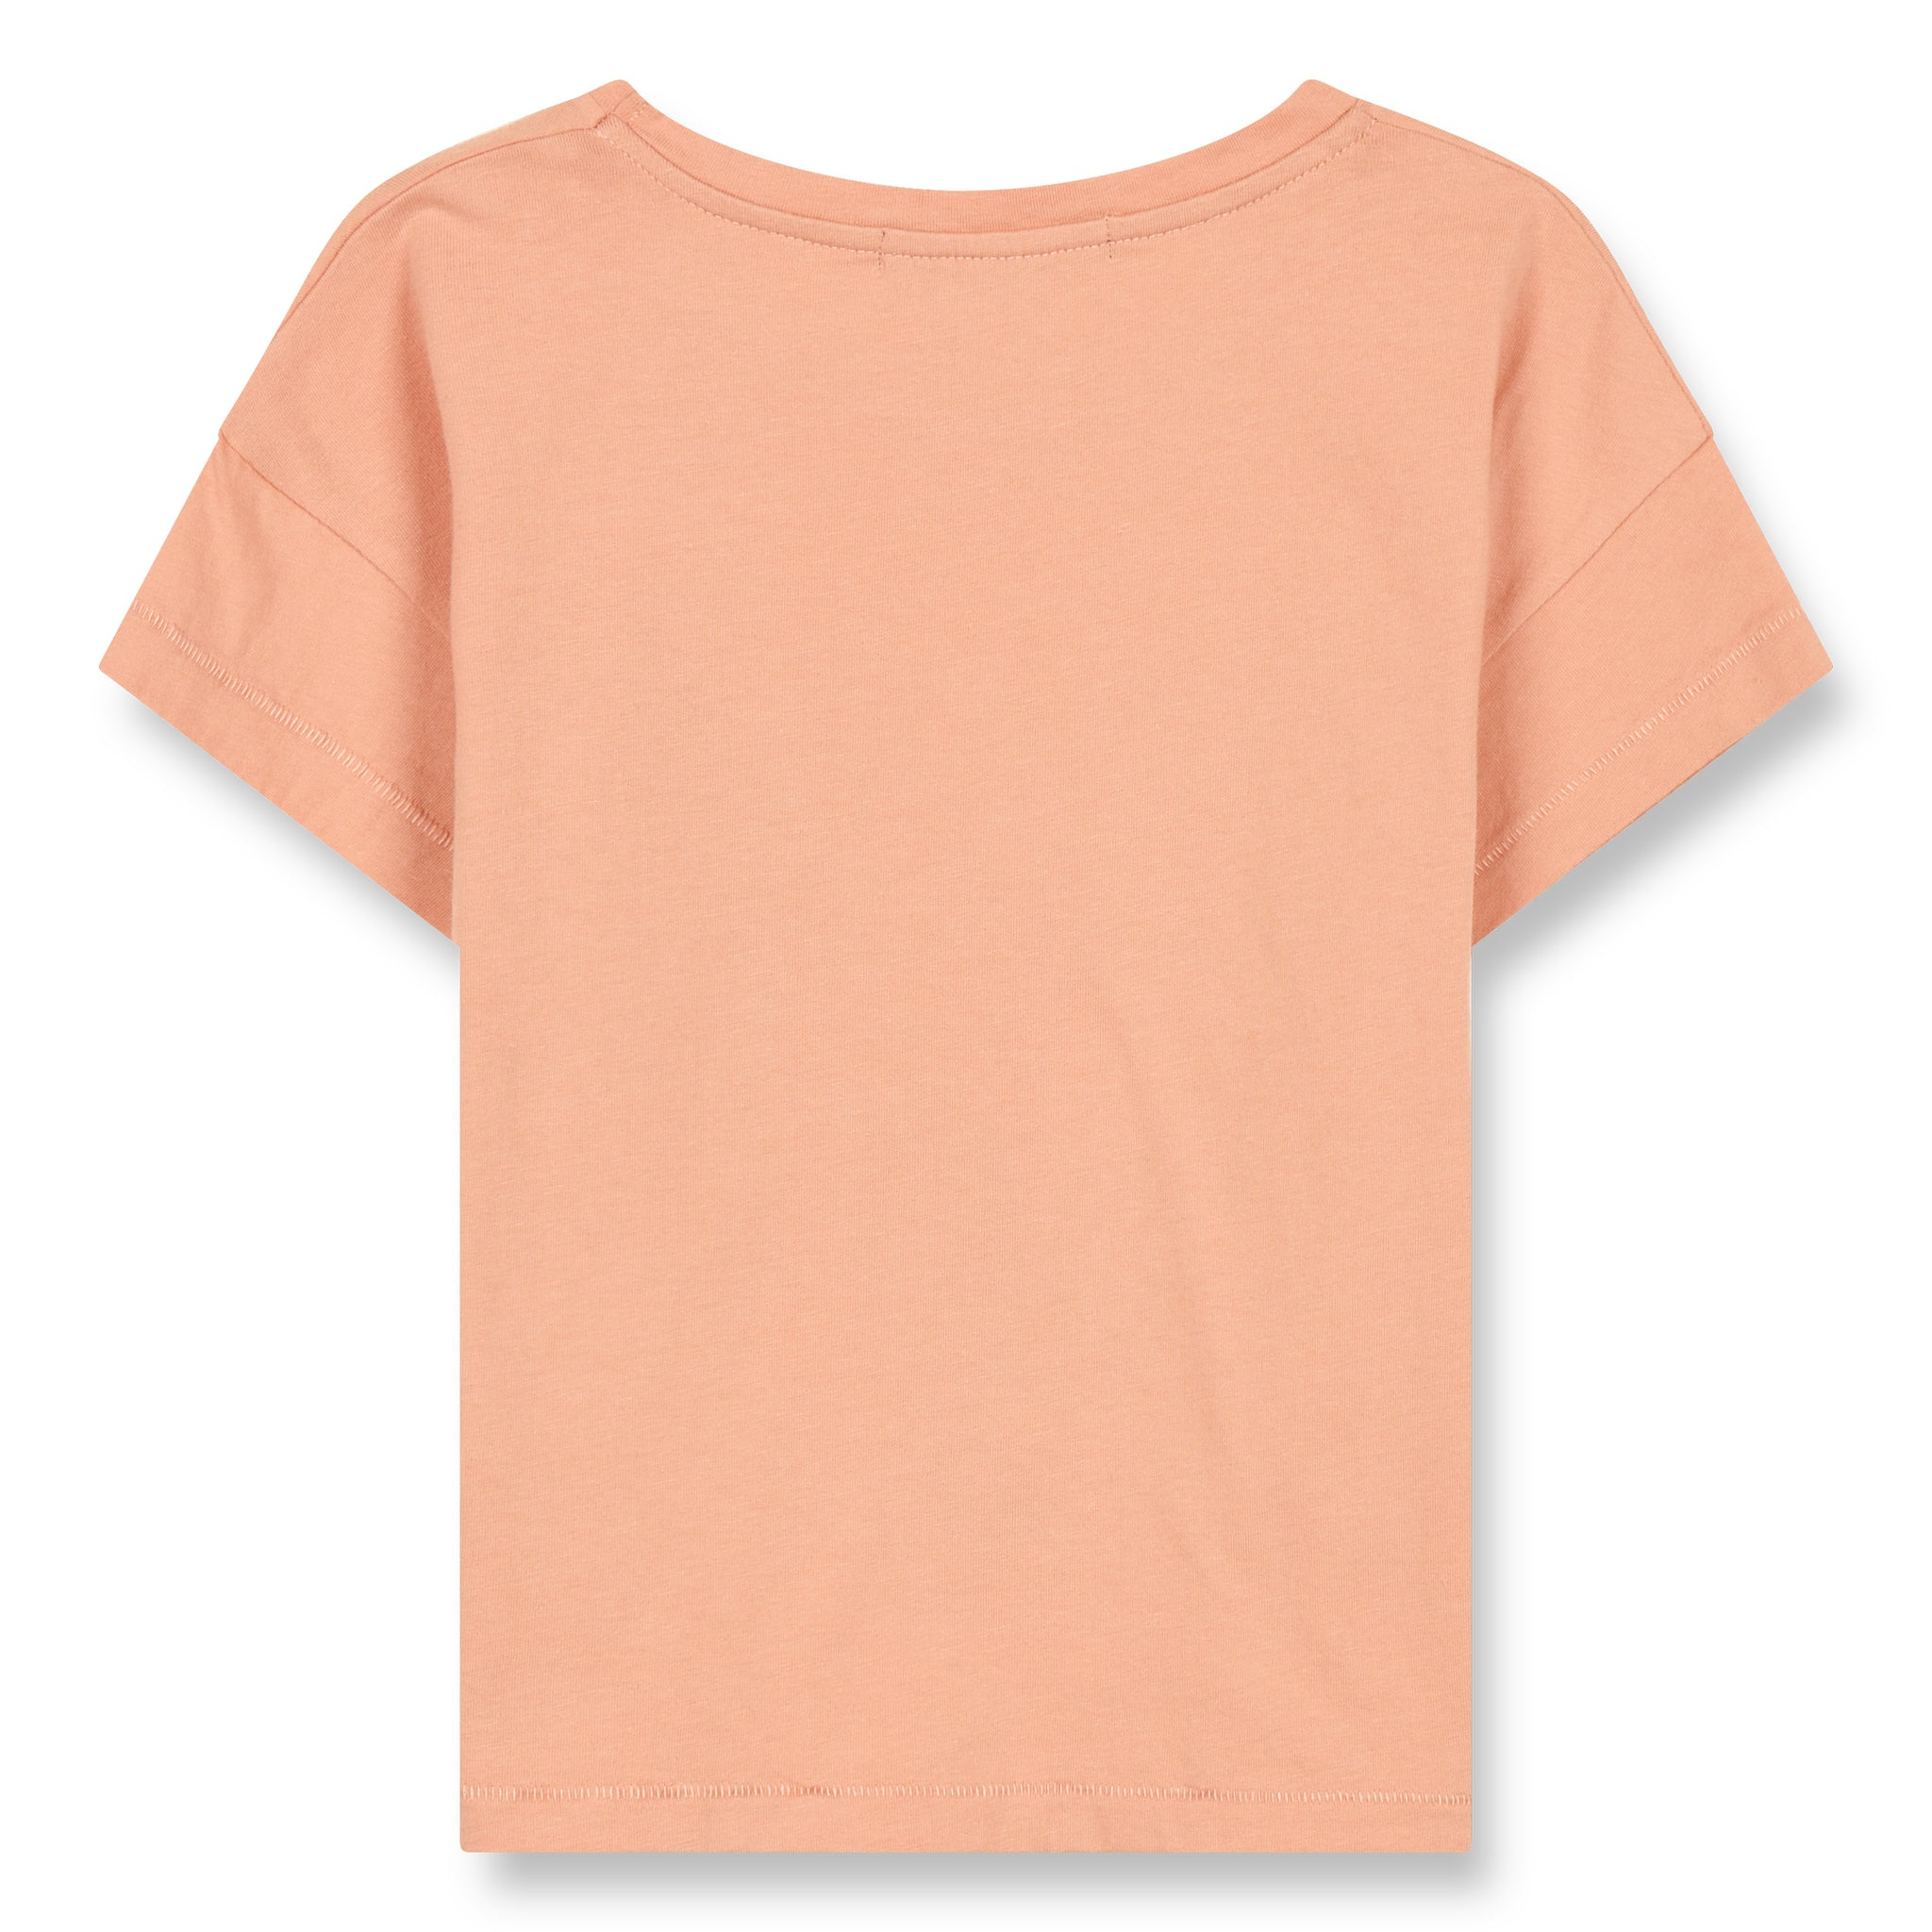 DROP Powder Pink Parrots - Jersey Short Sleeve Cropped T-Shirt 2